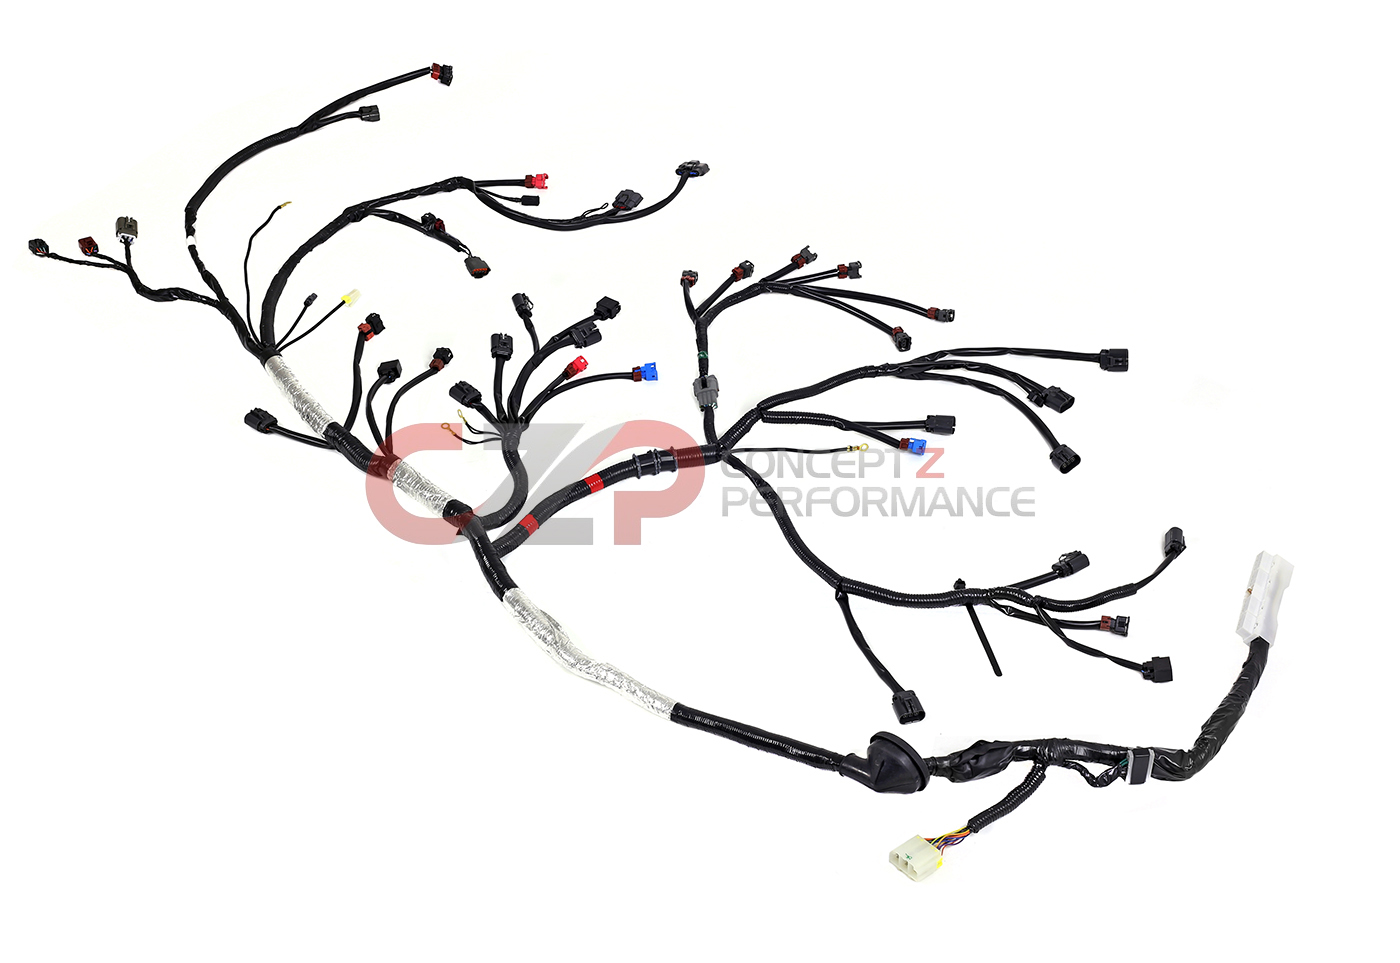 1990 300zx Engine Wiring Harness - Just Another Wiring Diagram Blog on 280z wiring harness diagram, f-22 diagram, bmw wiring harness diagram, camaro wiring harness diagram, subaru wiring harness diagram, 300c wiring harness diagram, mitsubishi wiring harness diagram, integra wiring harness diagram, toyota wiring harness diagram, miata wiring harness diagram, nissan 300zx wiring diagram, truck wiring harness diagram, 300zx speakers, mustang wiring harness diagram, 300zx stereo wiring diagram, s13 wiring harness diagram, 300zx engine swap, 3000gt wiring harness diagram, 1990 honda accord ex diagram, running wiring harness diagram,